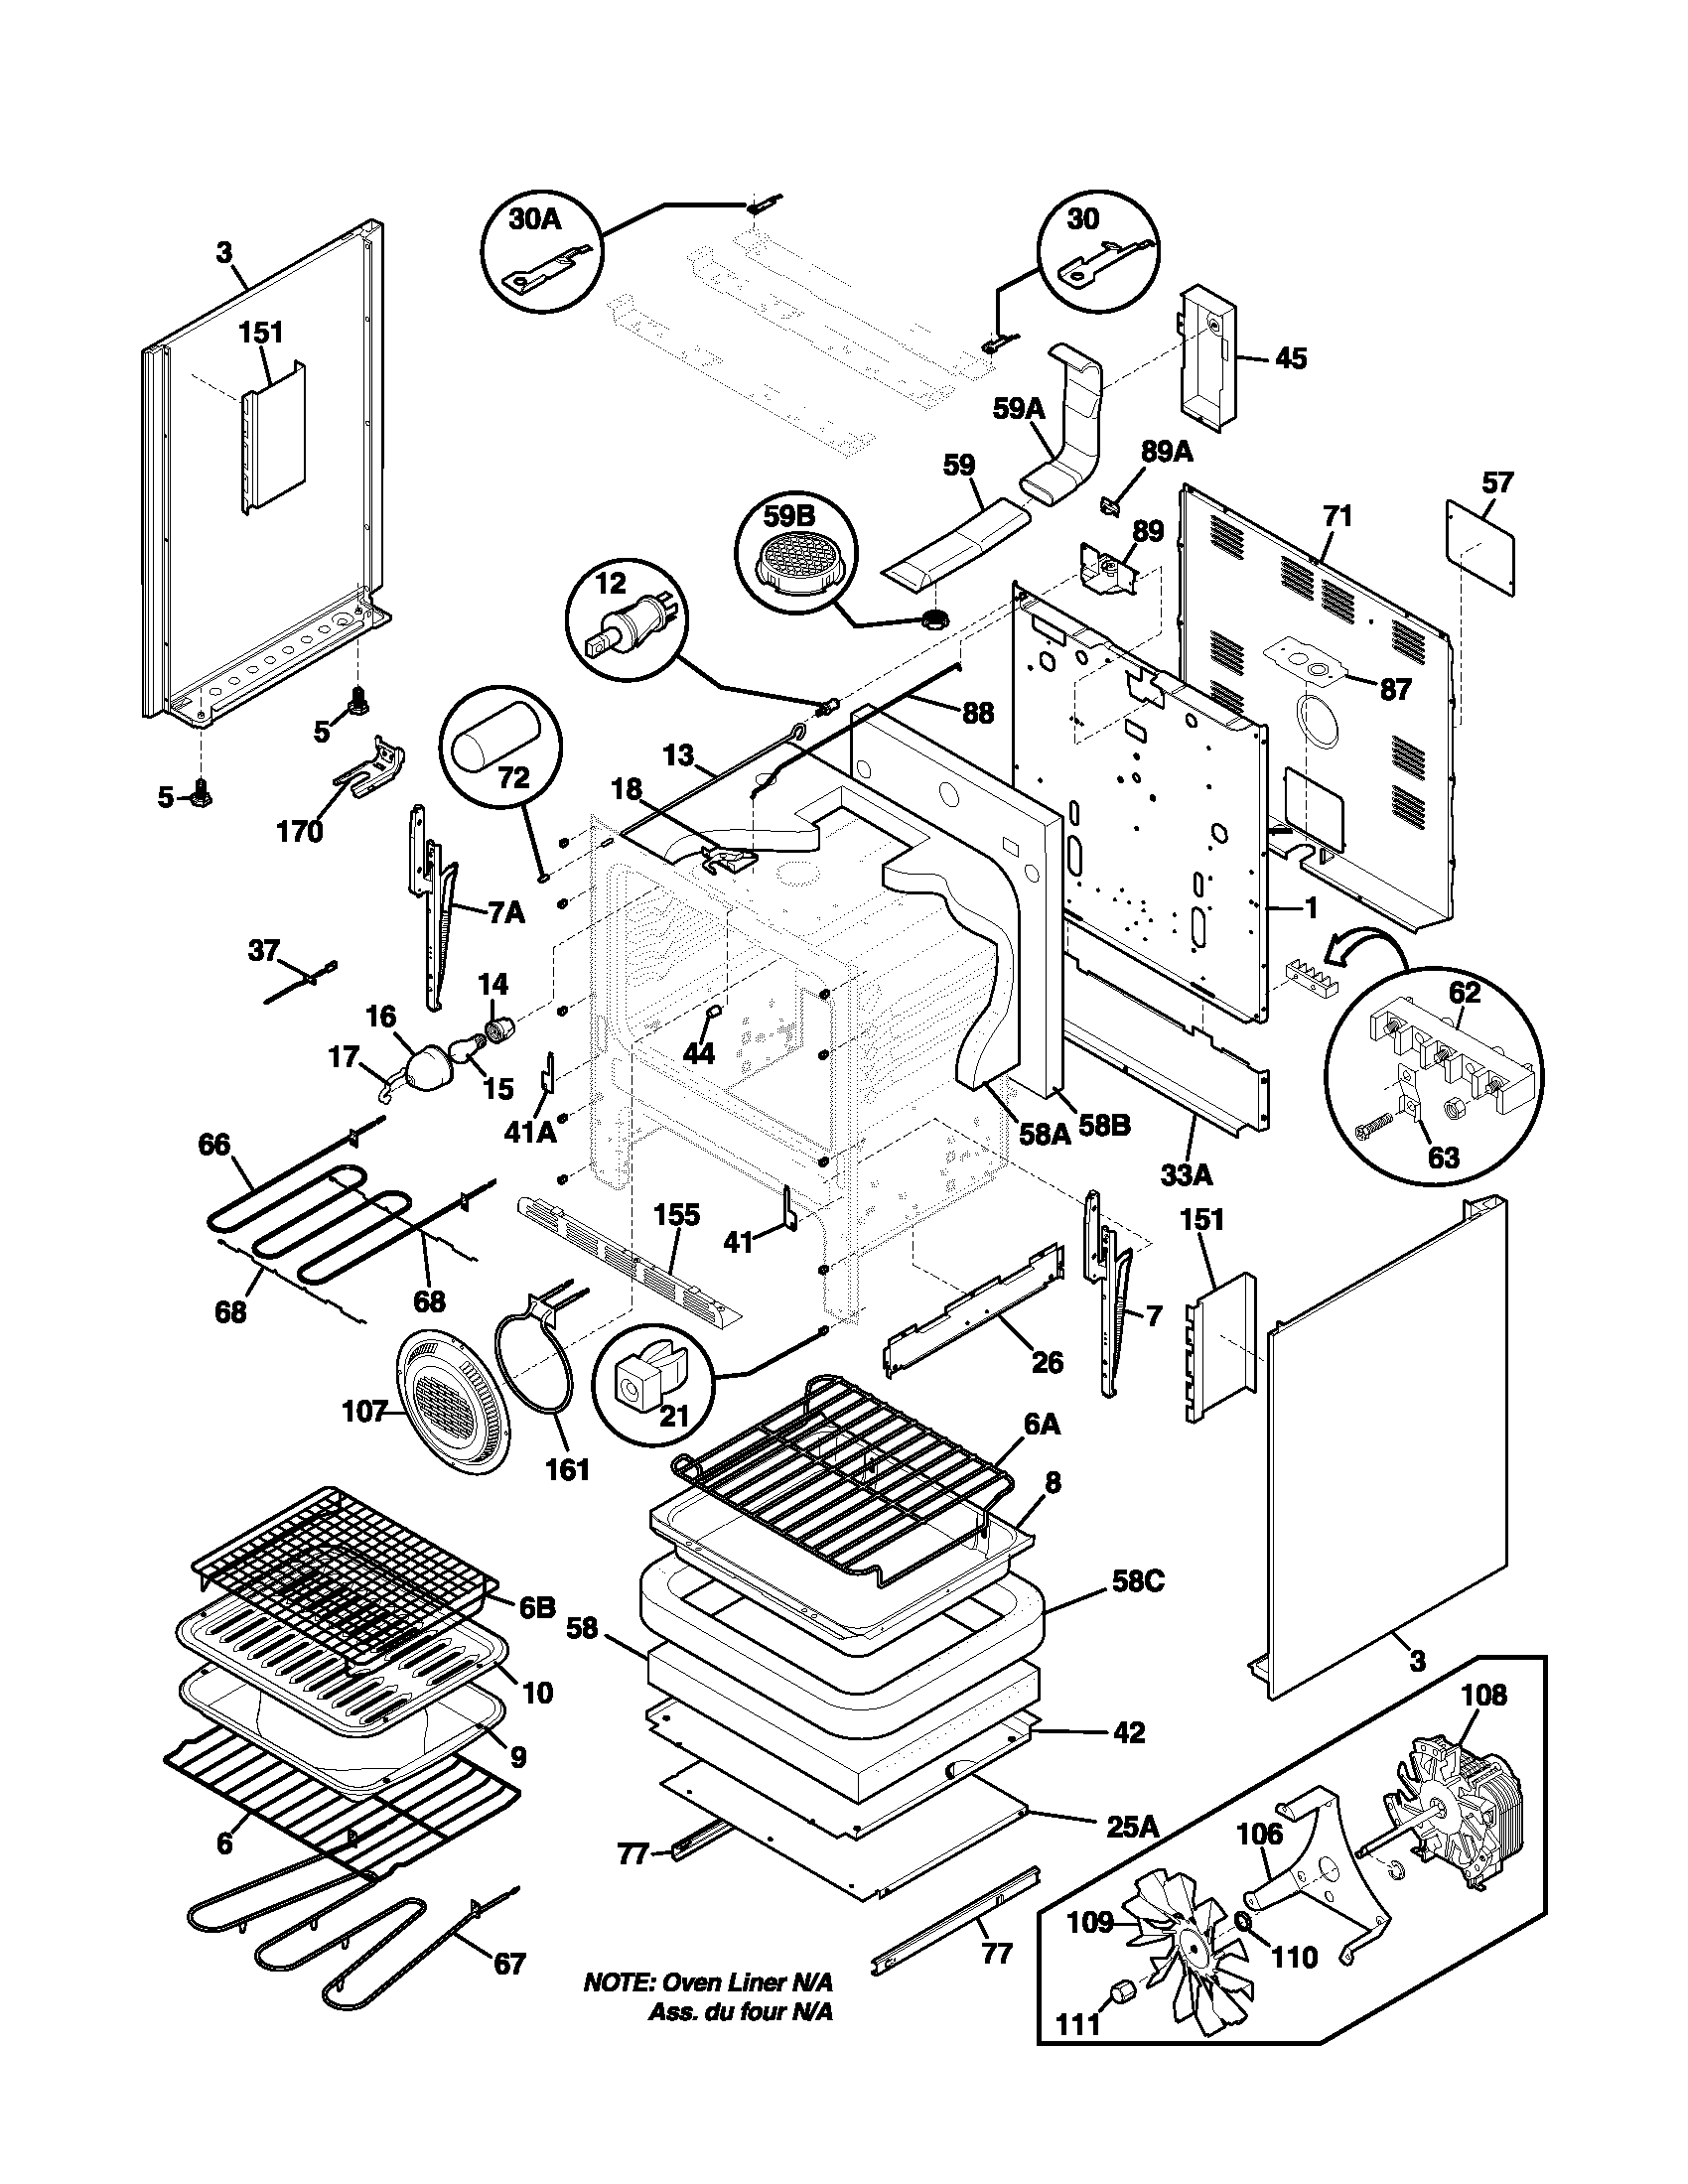 hight resolution of plef398aca electric range body parts diagram